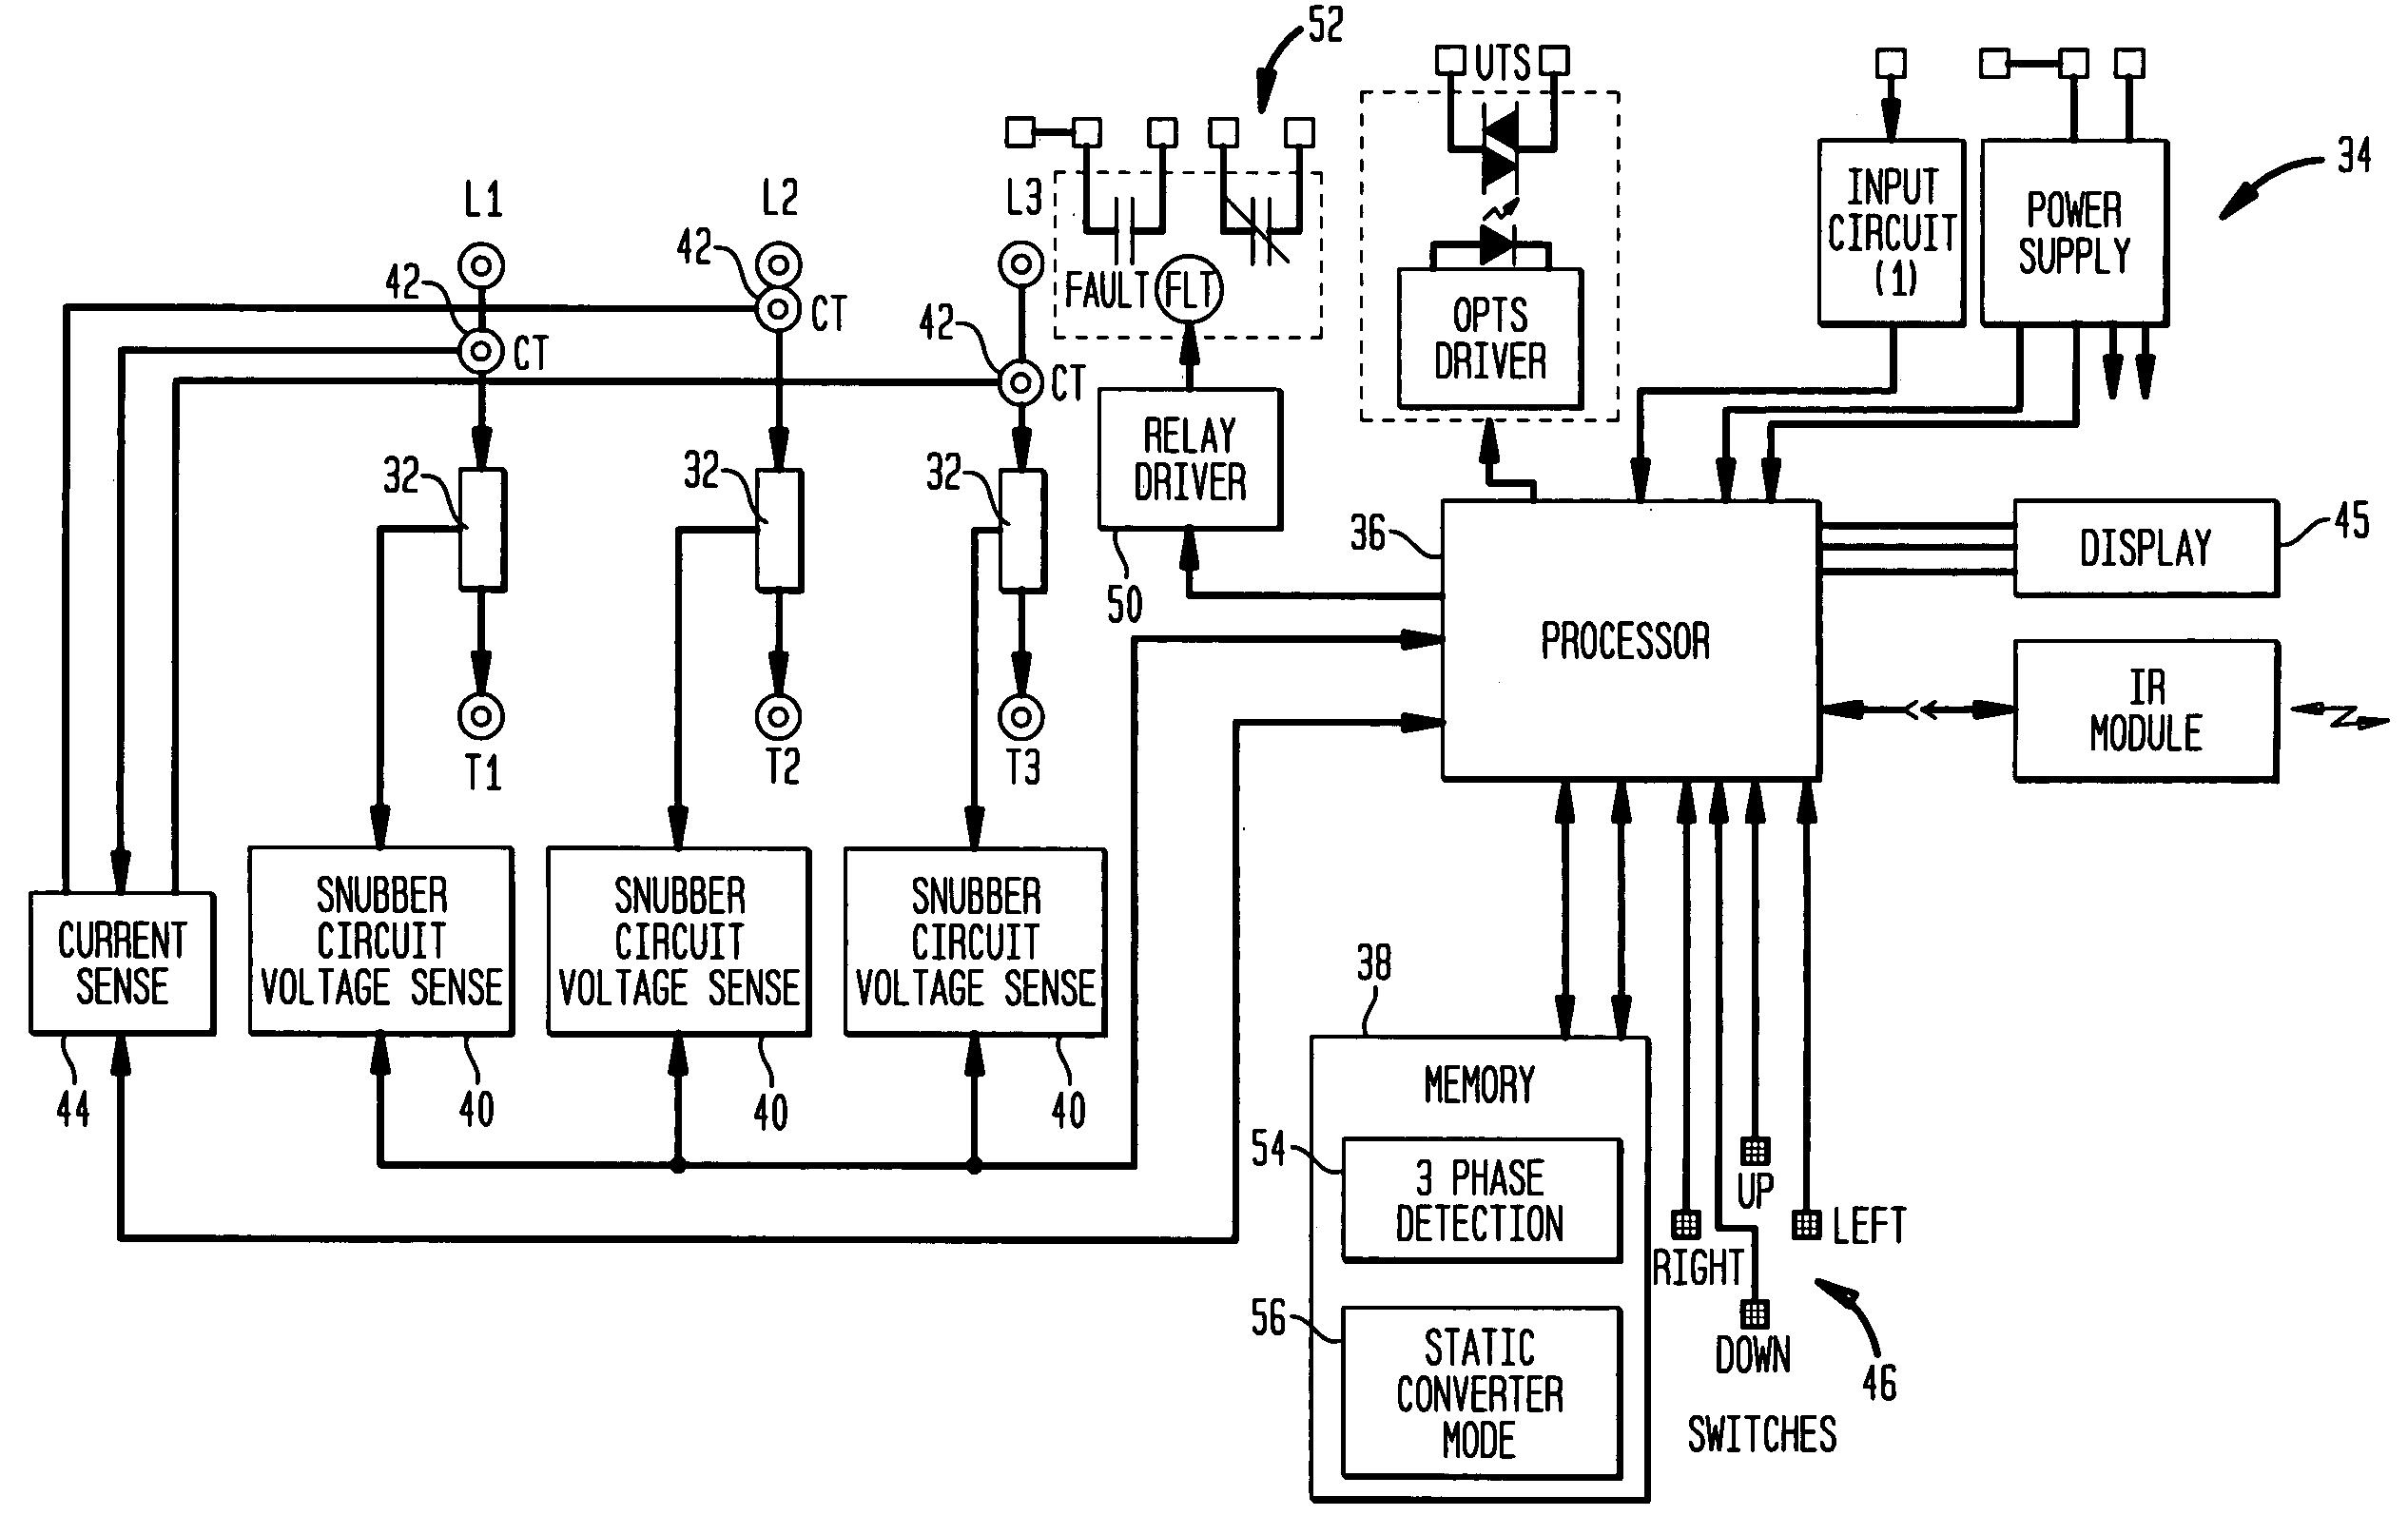 US07859217 20101228 D00000 patent us7859217 system and method for operating a soft starter eaton soft starter wiring diagram at alyssarenee.co